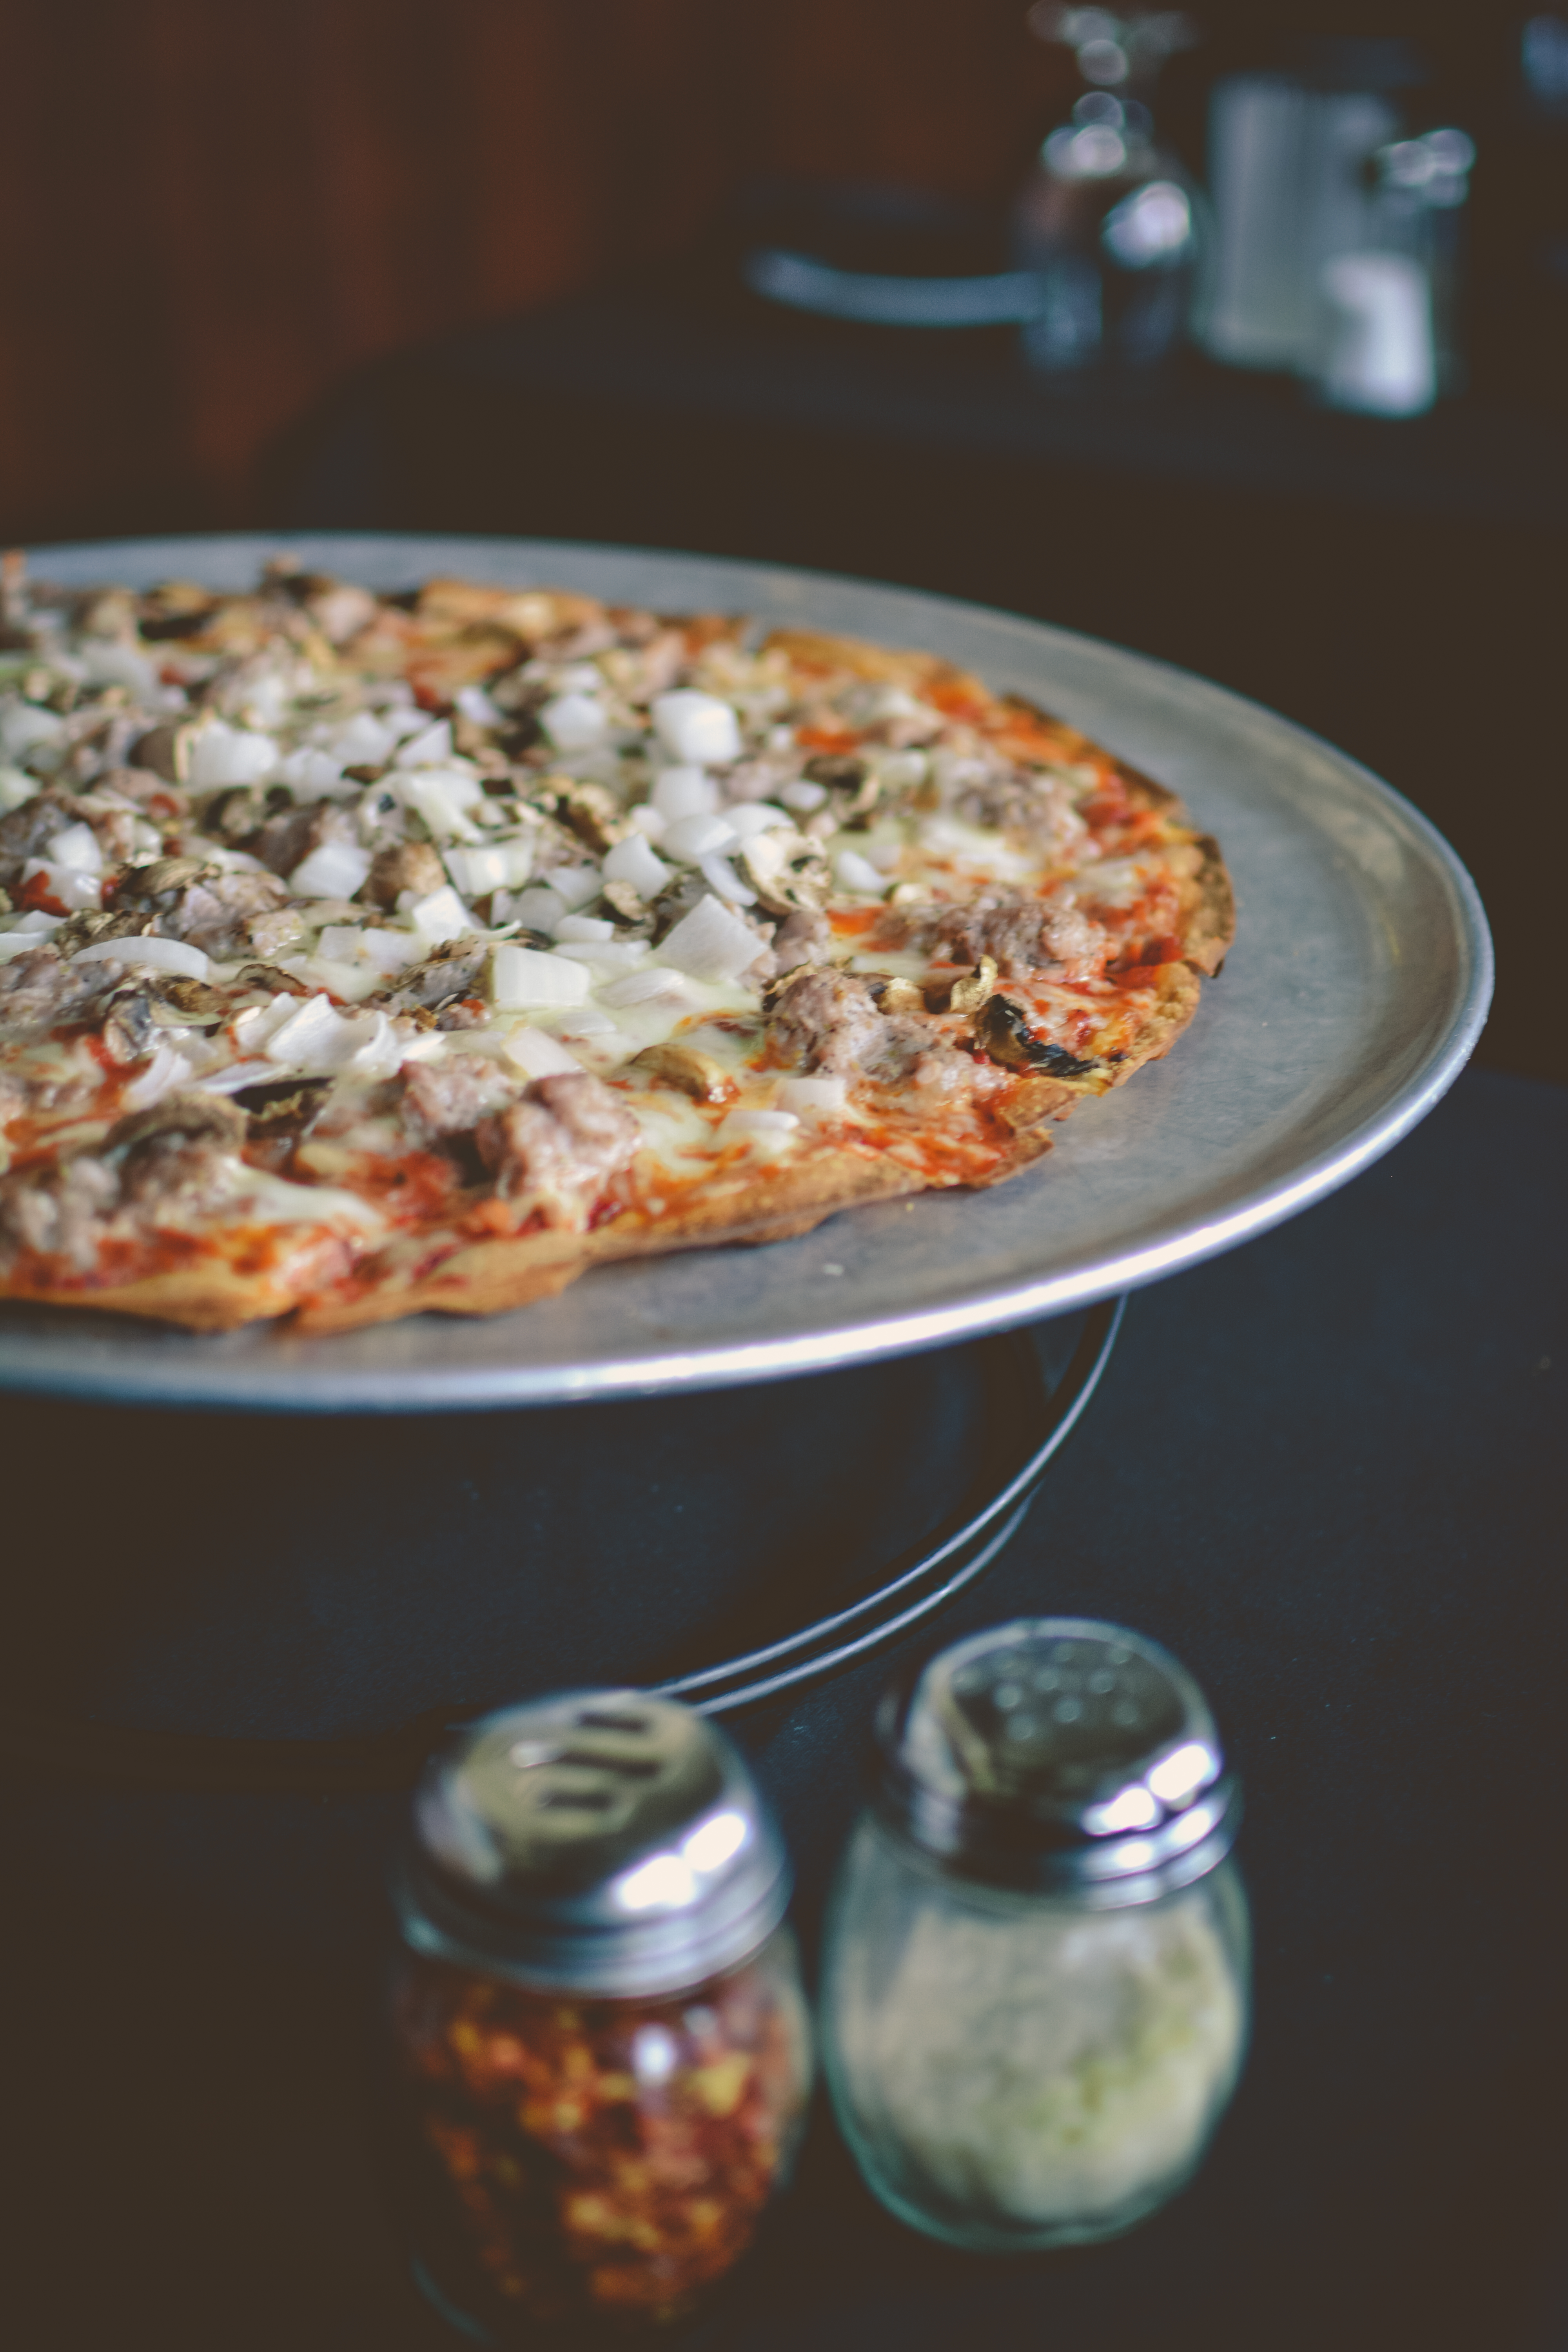 The Top 5 Pizza Places in Washington County WI According to Yelp